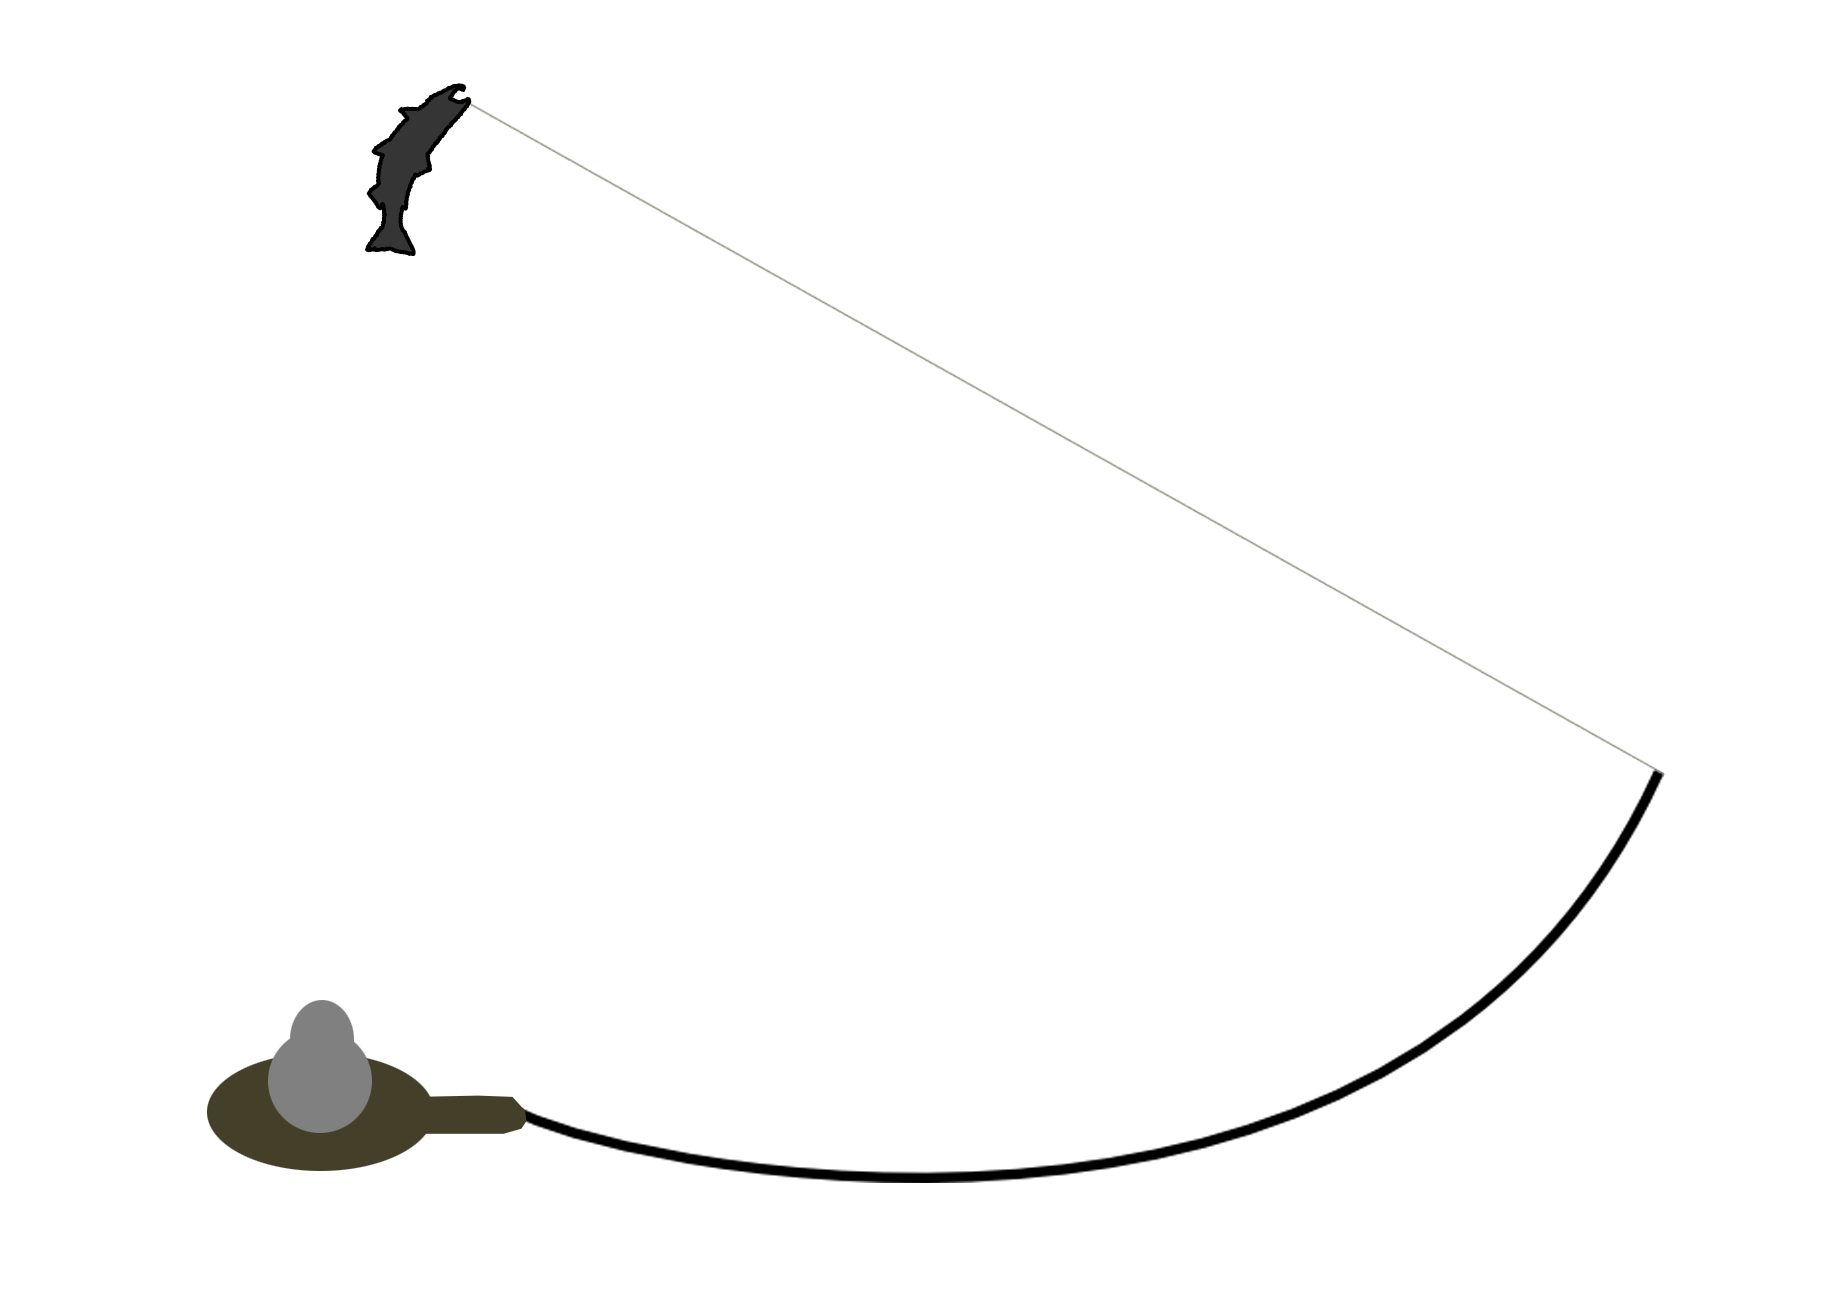 Big Fish Tenkara Fly Destruction Diagram If You Are Fishing A 13ft Rod And Lower Your All The Way To Right It Is Like Over